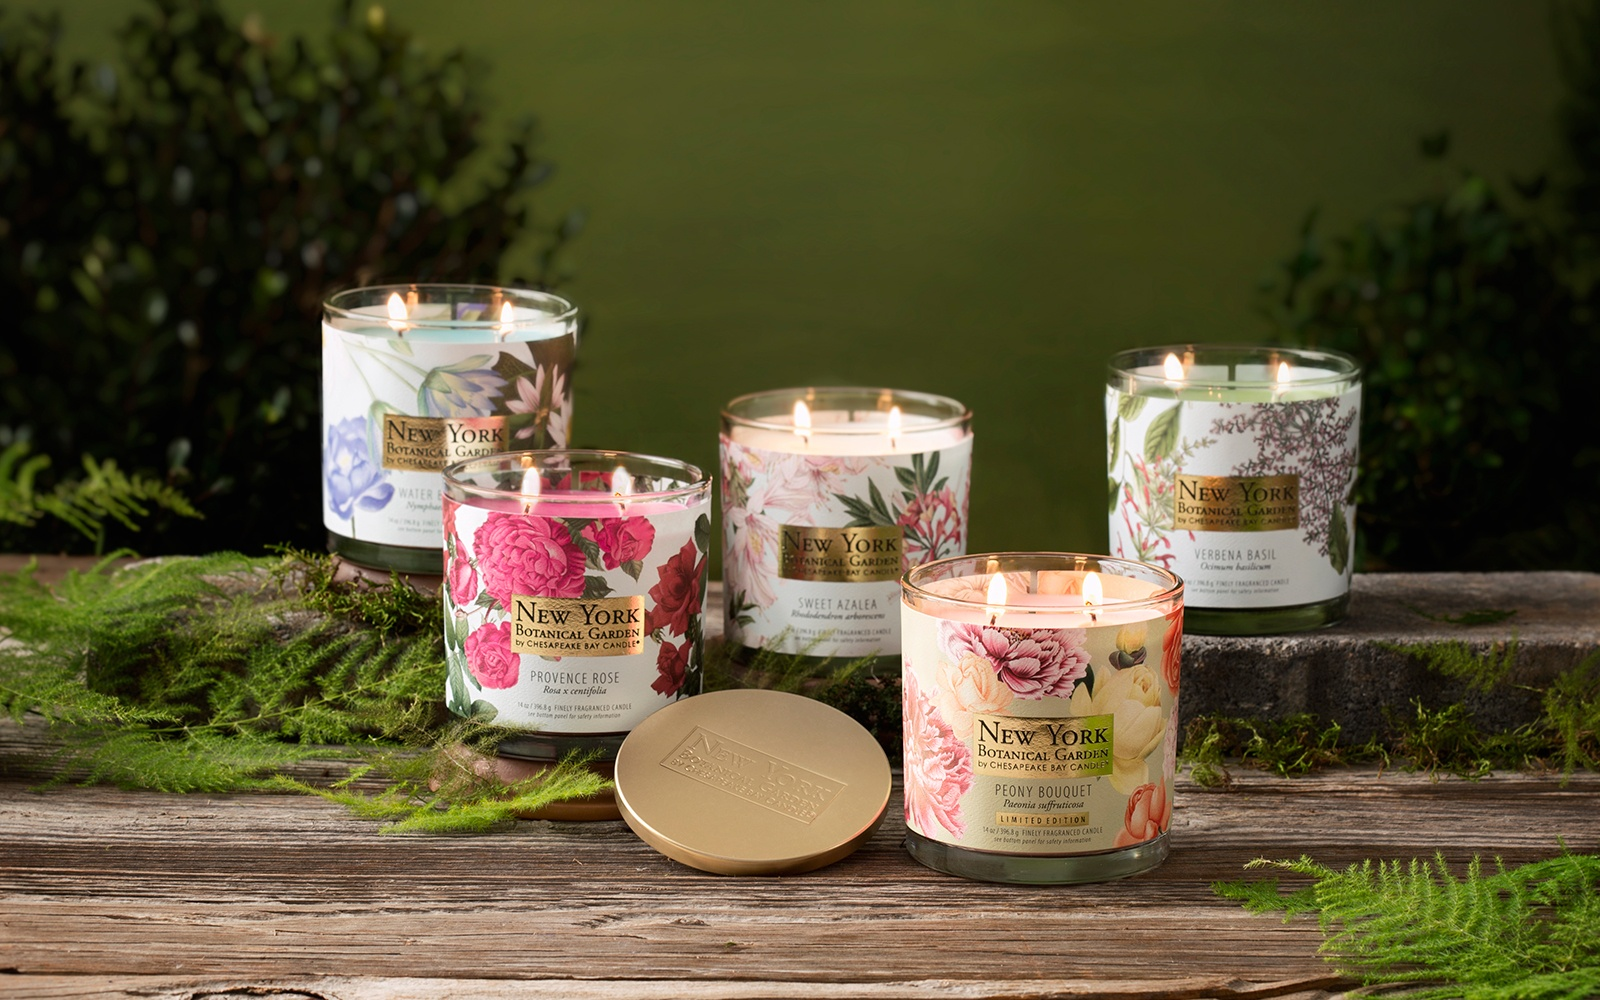 Chesapeake Bay Candle Partnership with NY Botanical Garden